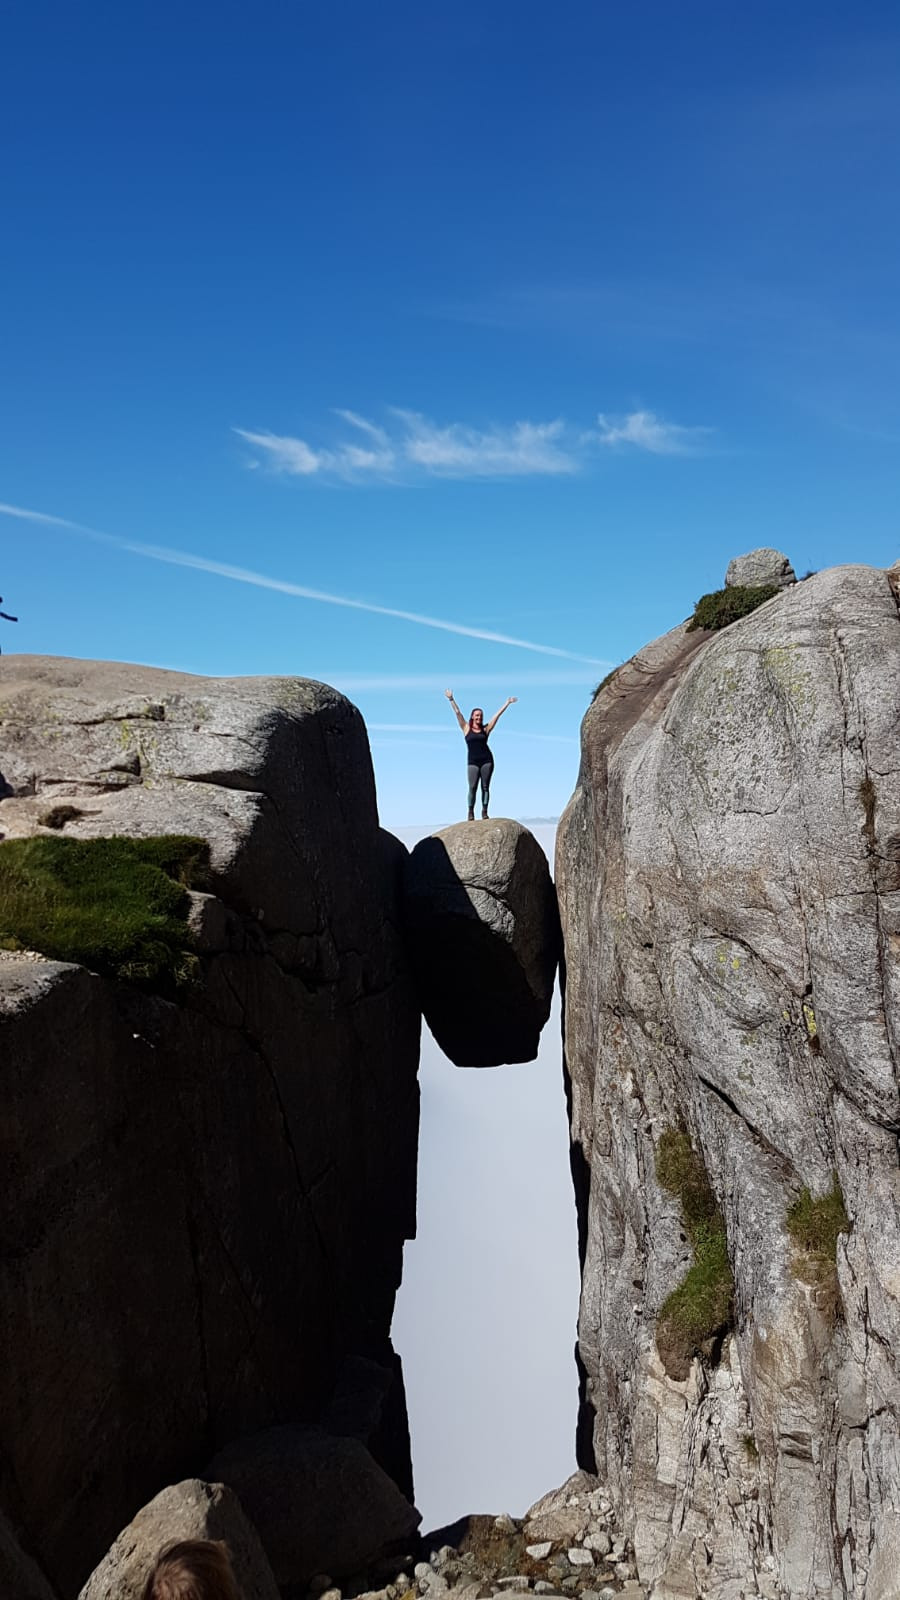 Personal Training Client Fay, on top of the world on our Fitness Trip to Kjerag - Norway.